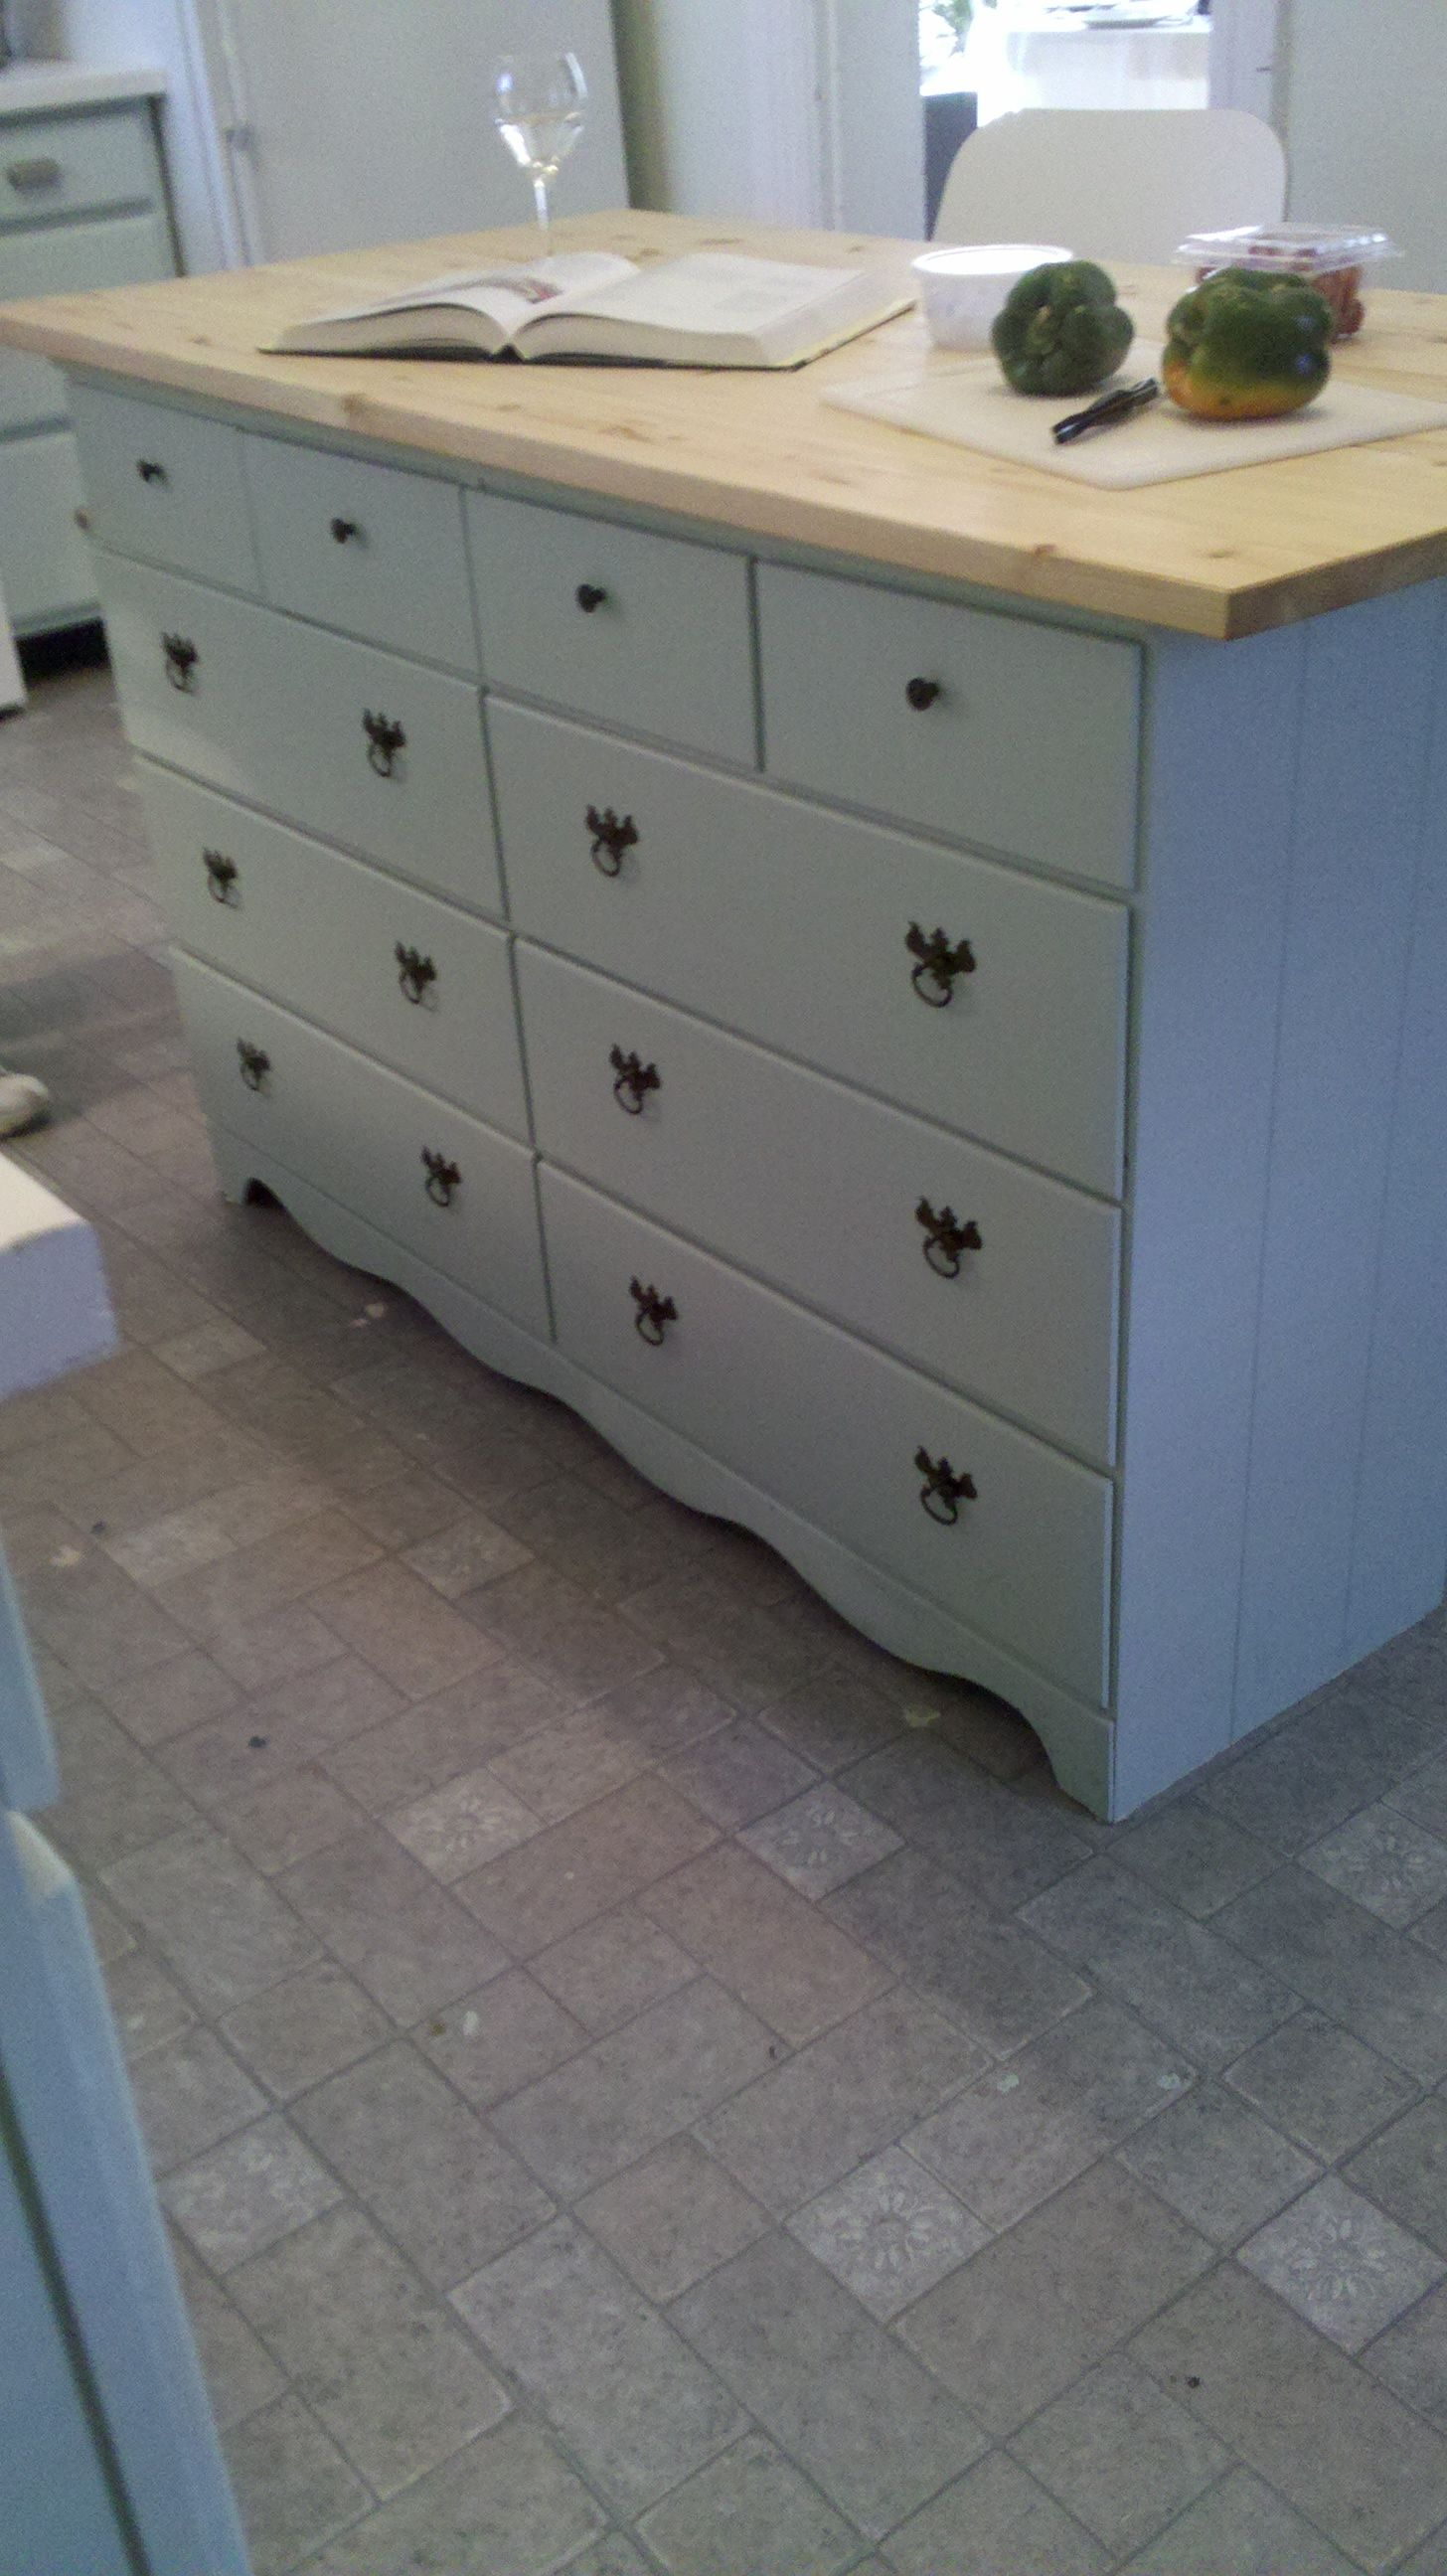 Ikea Mandal Chest Of Drawers ~ Paint and old dresser Buy a wooden counter top from Ikea Drill the